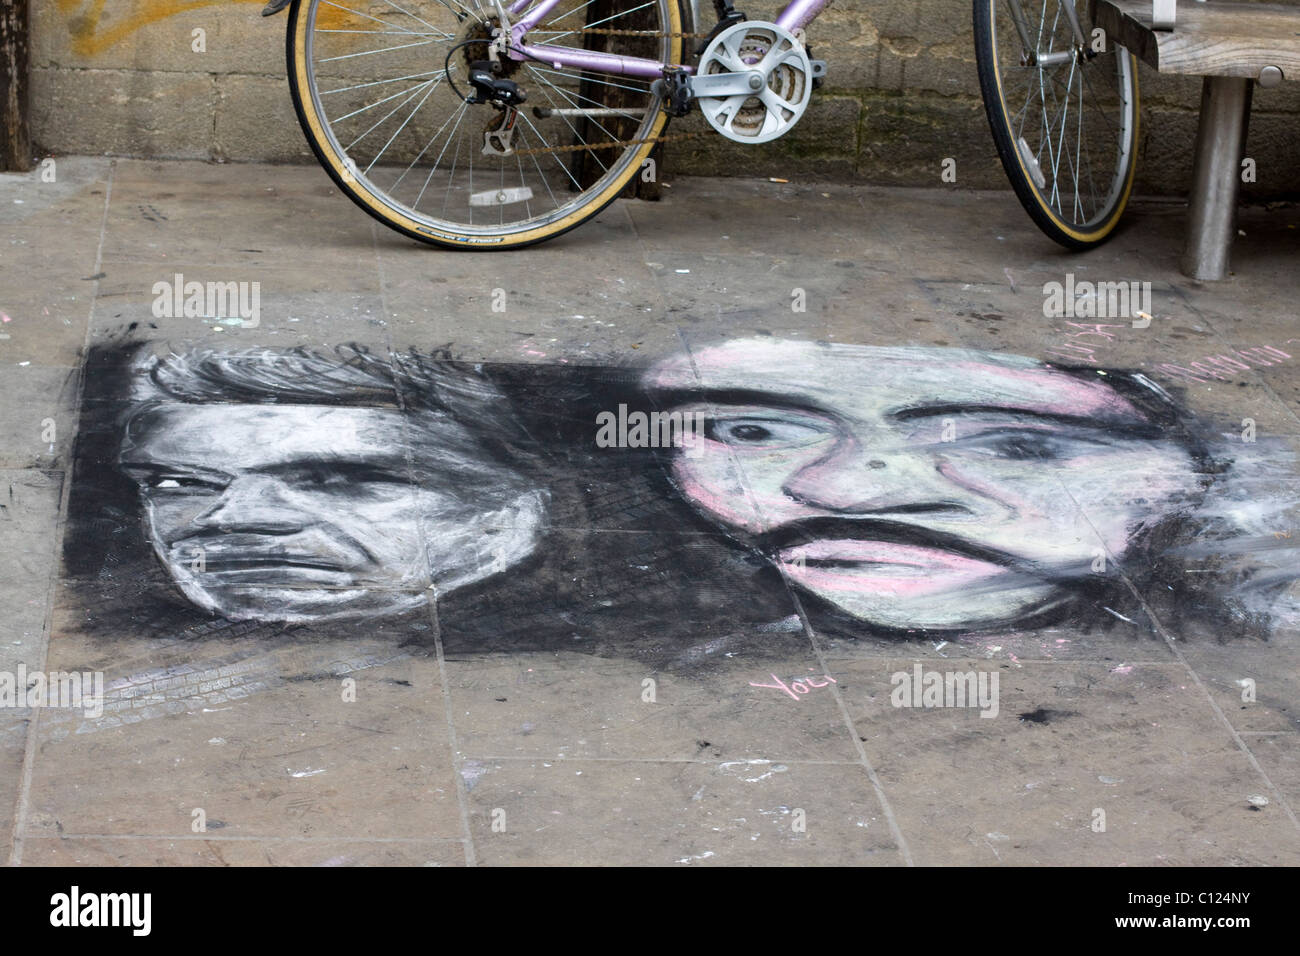 Art on the pavement in Oxfordshire England - Stock Image